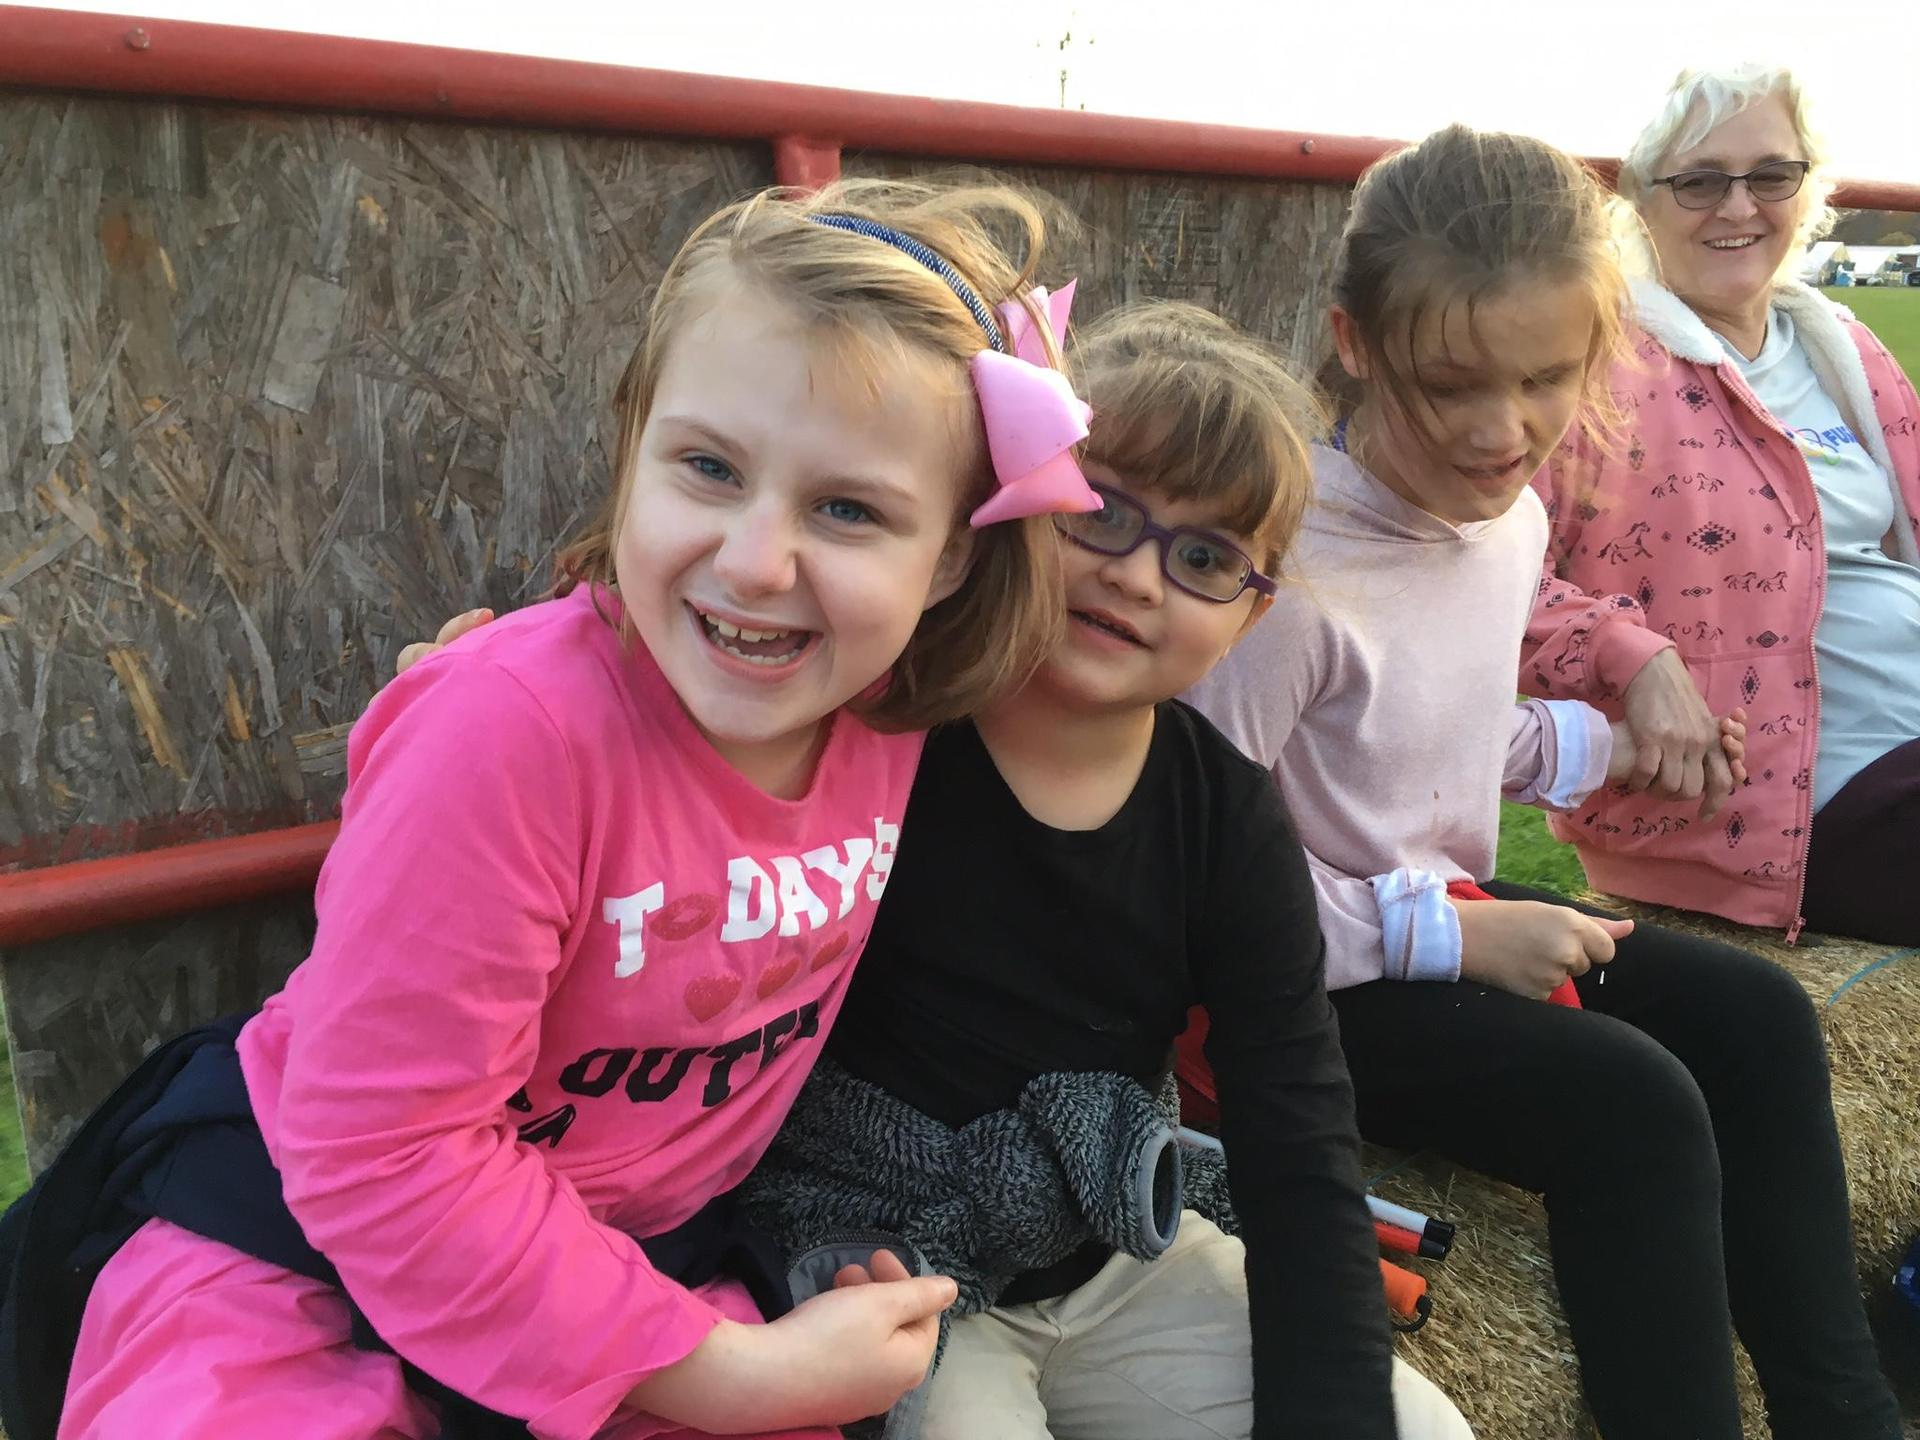 Three female students smile for the camera during the hayride